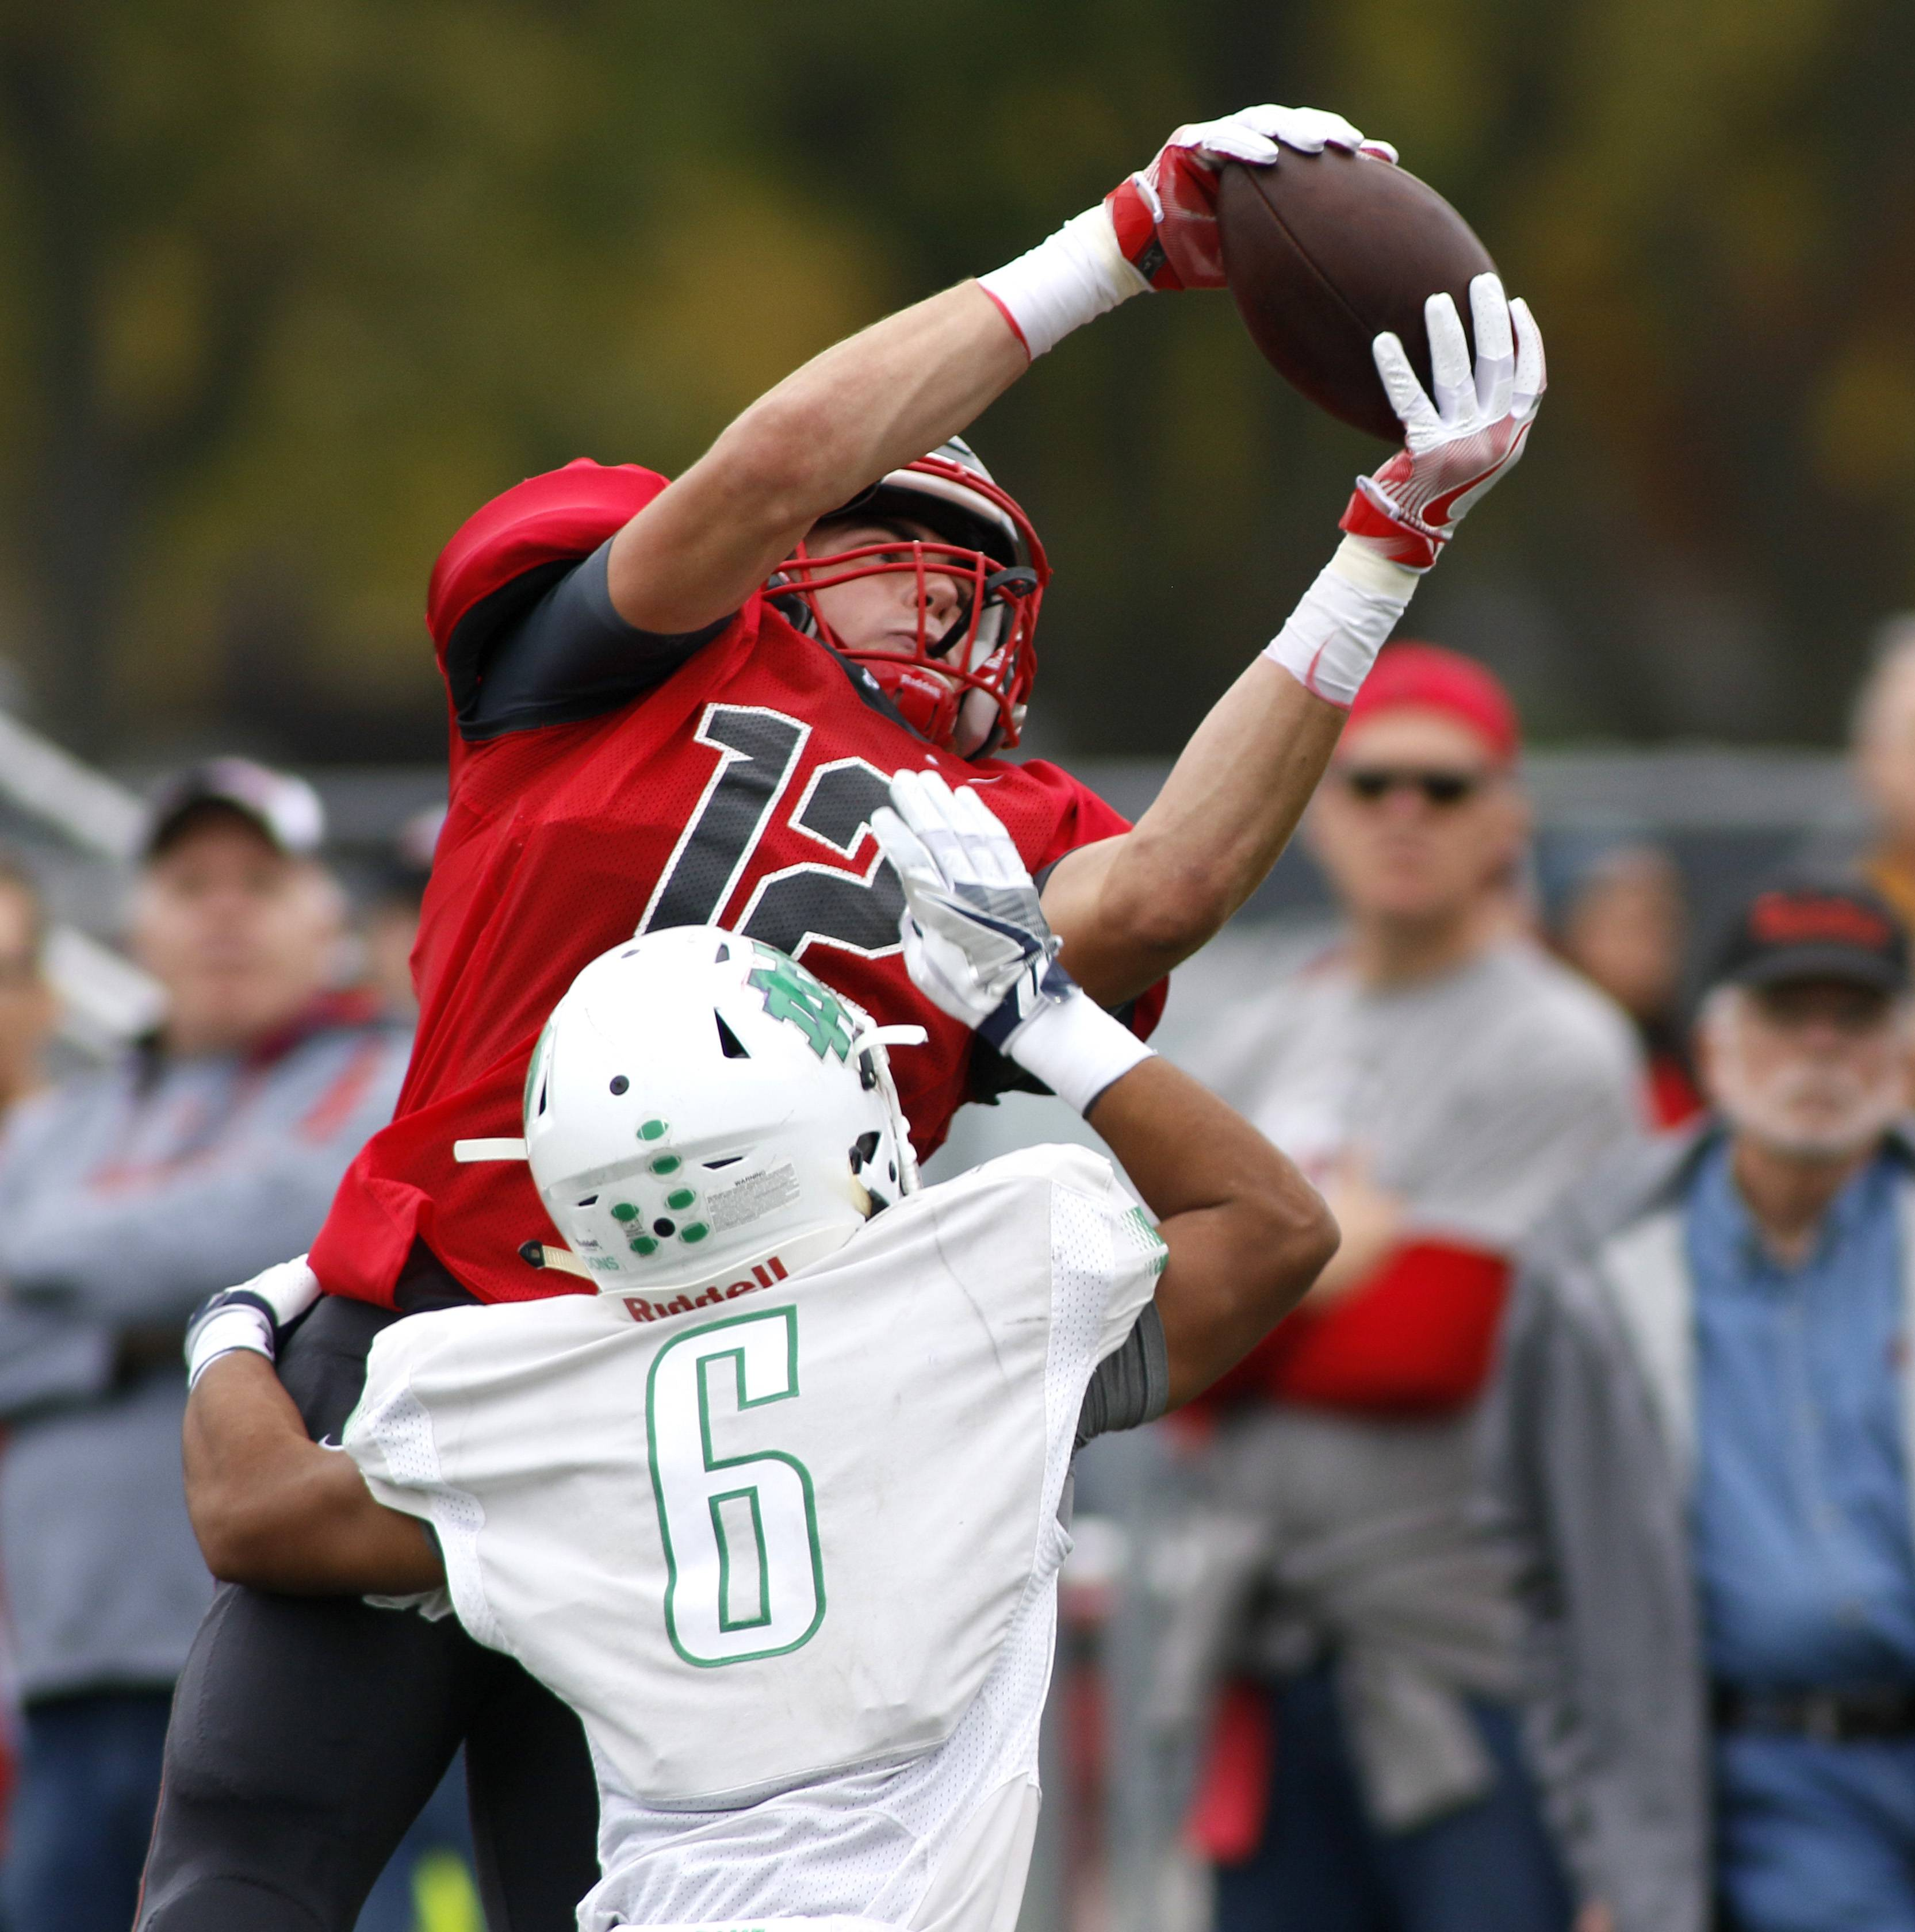 Palatine's Jack Grochowski (12) catches a pass in the end zone which was ruled incomplete against Notre Dame's Michael Valdez (6) during the first round of the Class 8A football playoffs in Palatine.